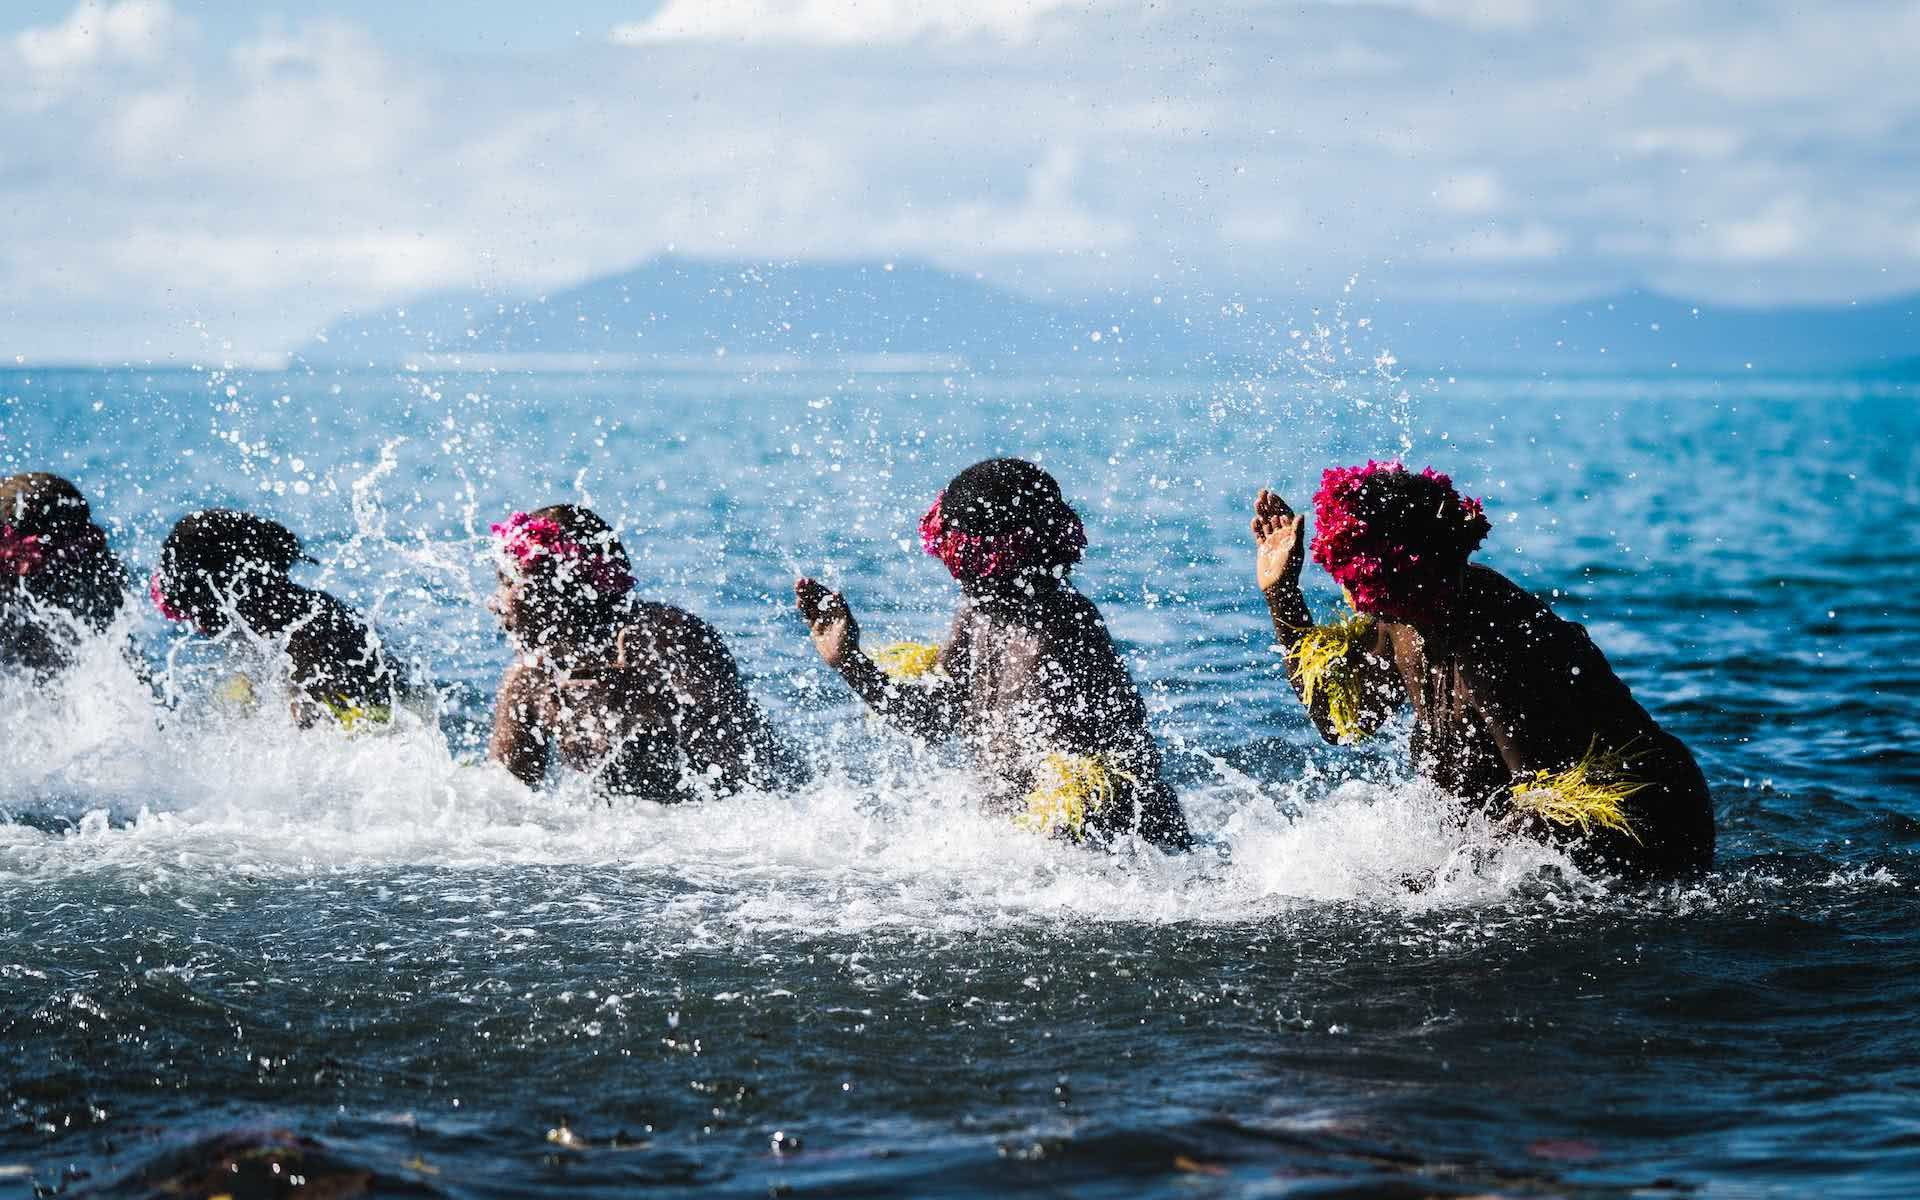 The Best Places to Stay in the Outer Islands of Vanuatu, photos by Ben Savage and Ain Raadik, Ruby Claire, Gaua, Ladies water dance, water music, women, dancing, ocean